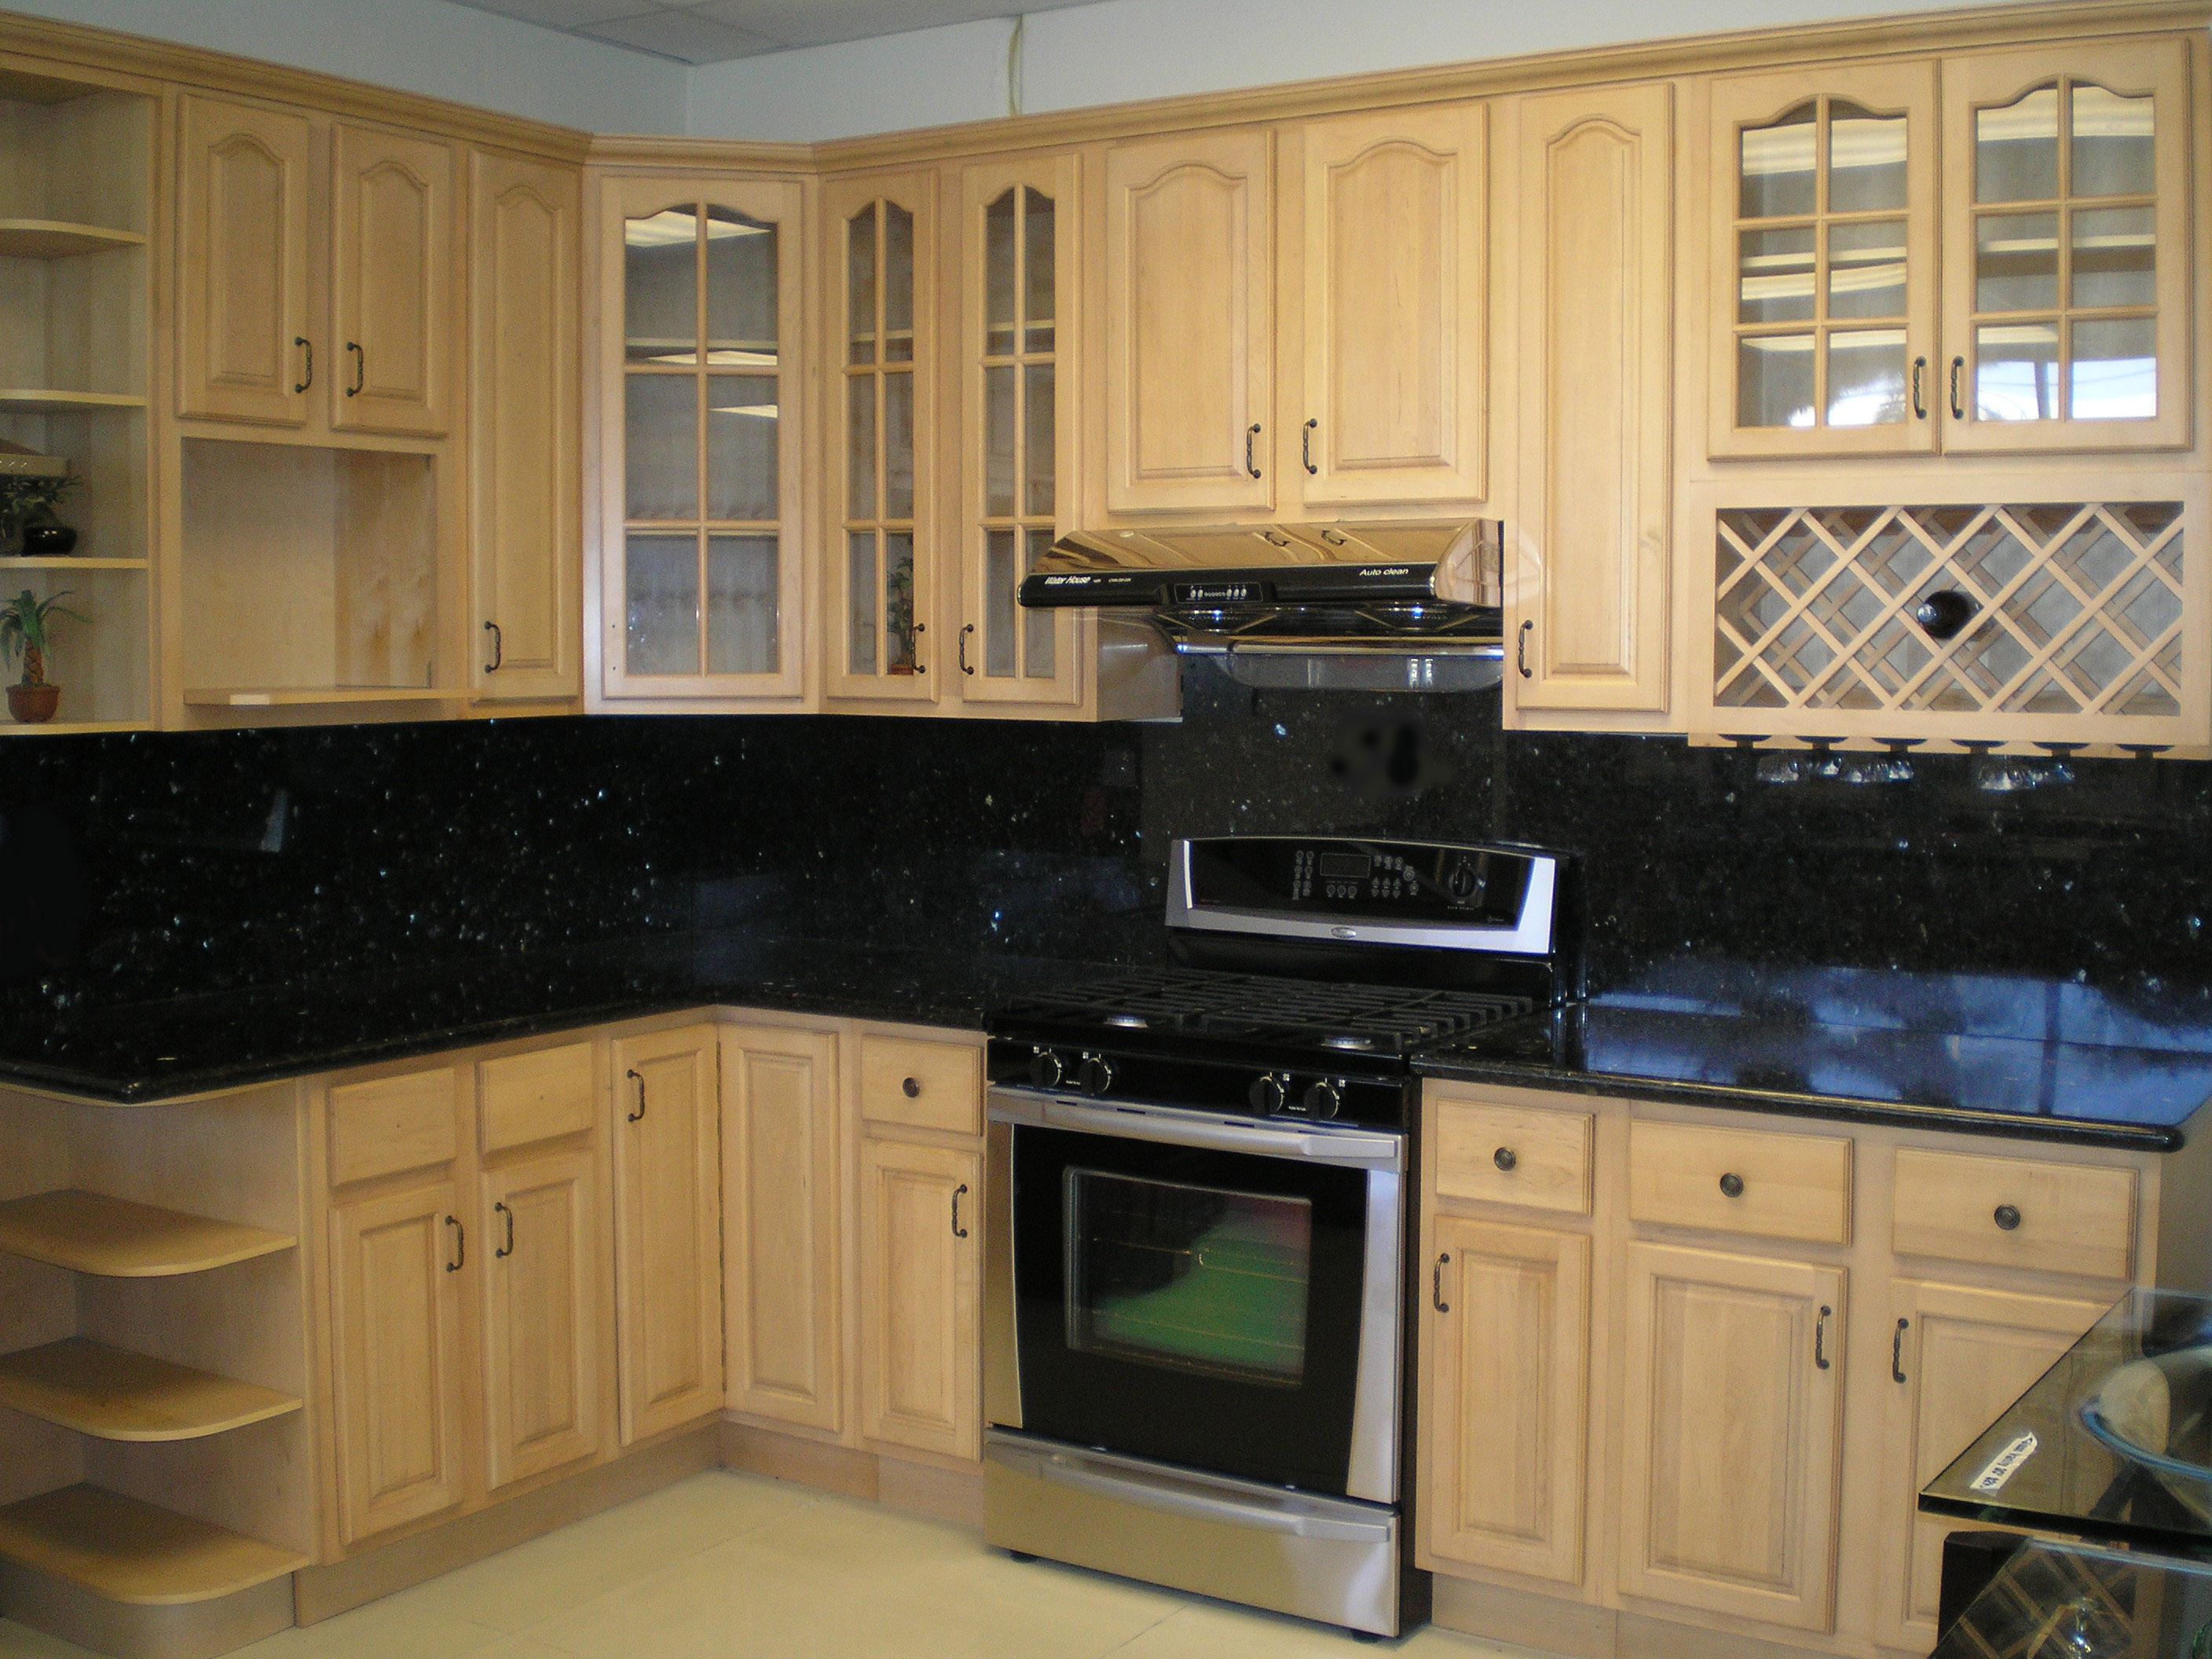 images of maple cabinet kitchens - best home decoration world class